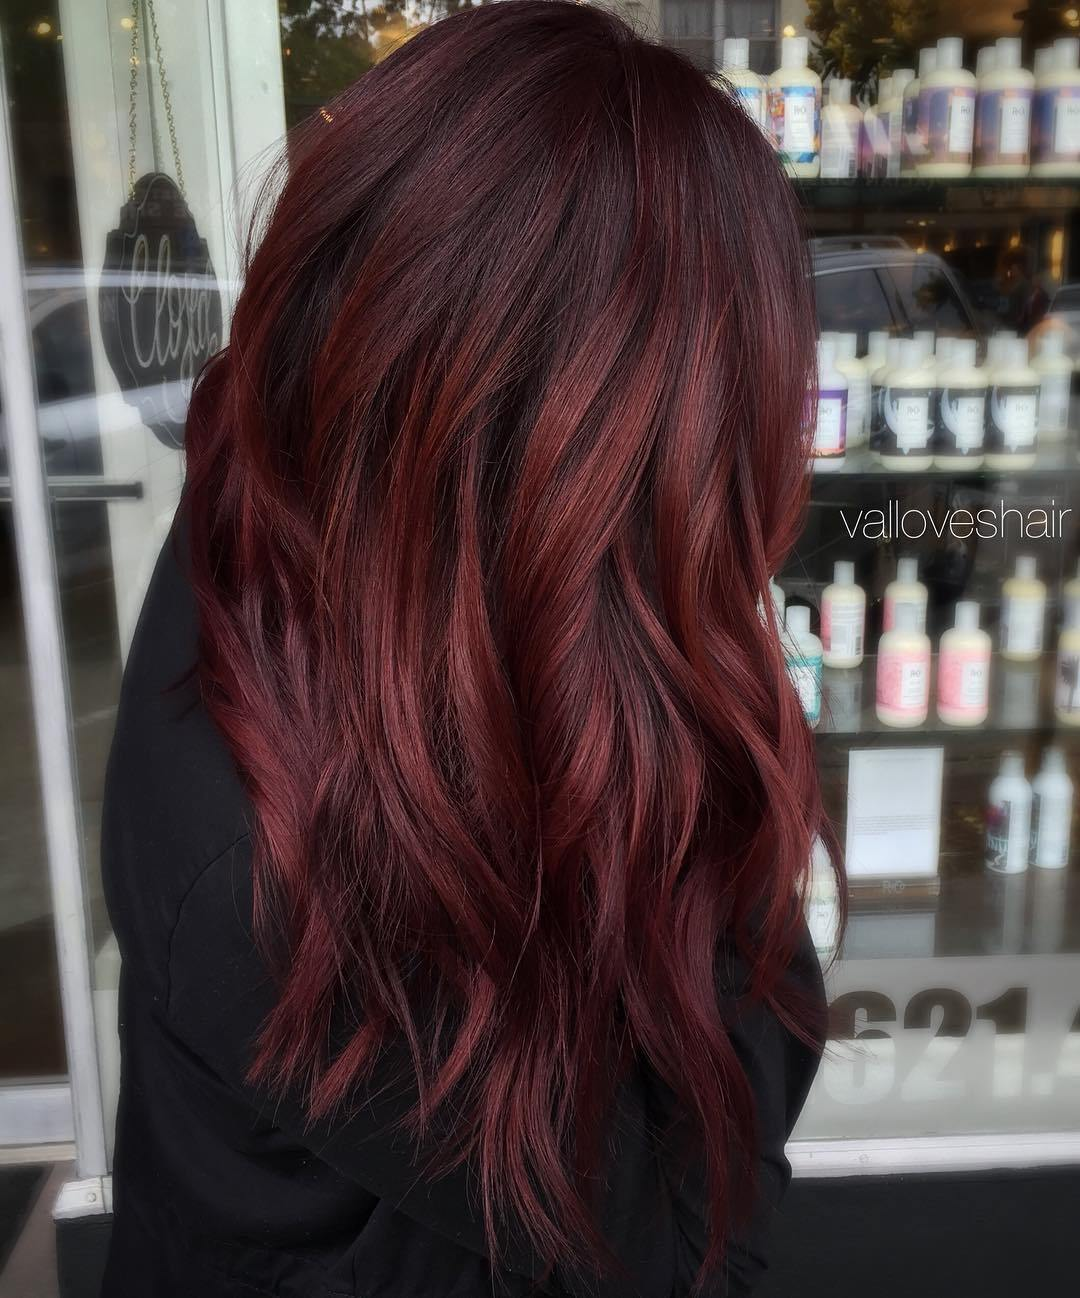 Can hair dye be used over hair highlights?